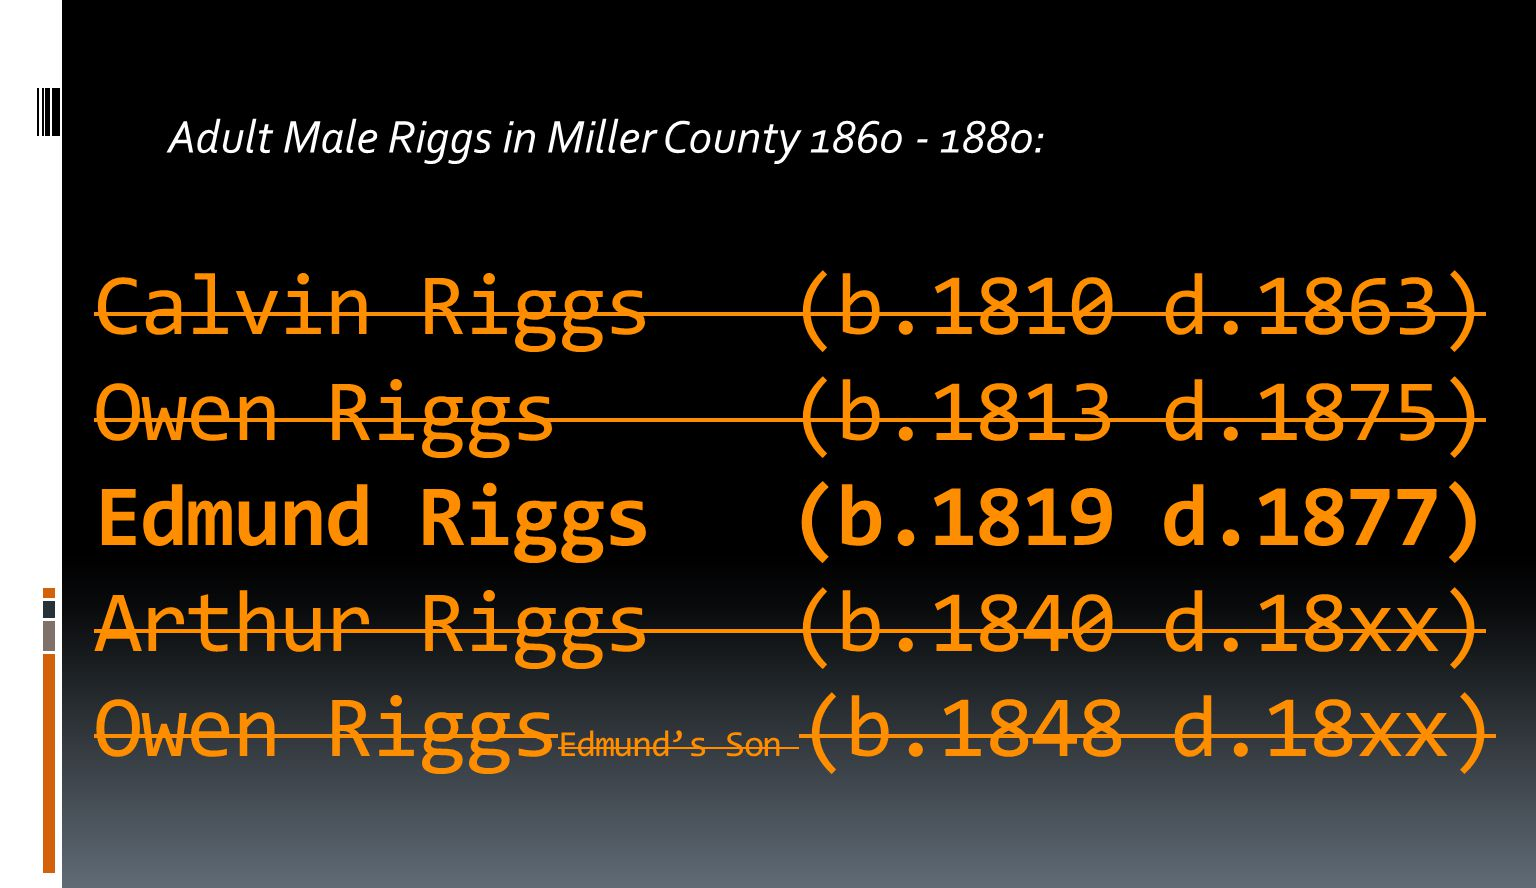 Calvin Riggs (b.1810 d.1863) Owen Riggs (b.1813 d.1875) Edmund Riggs (b.1819 d.1877) Arthur Riggs (b.1840 d.18xx) Owen Riggs Edmund's Son (b.1848 d.18xx) Adult Male Riggs in Miller County 1860 - 1880: